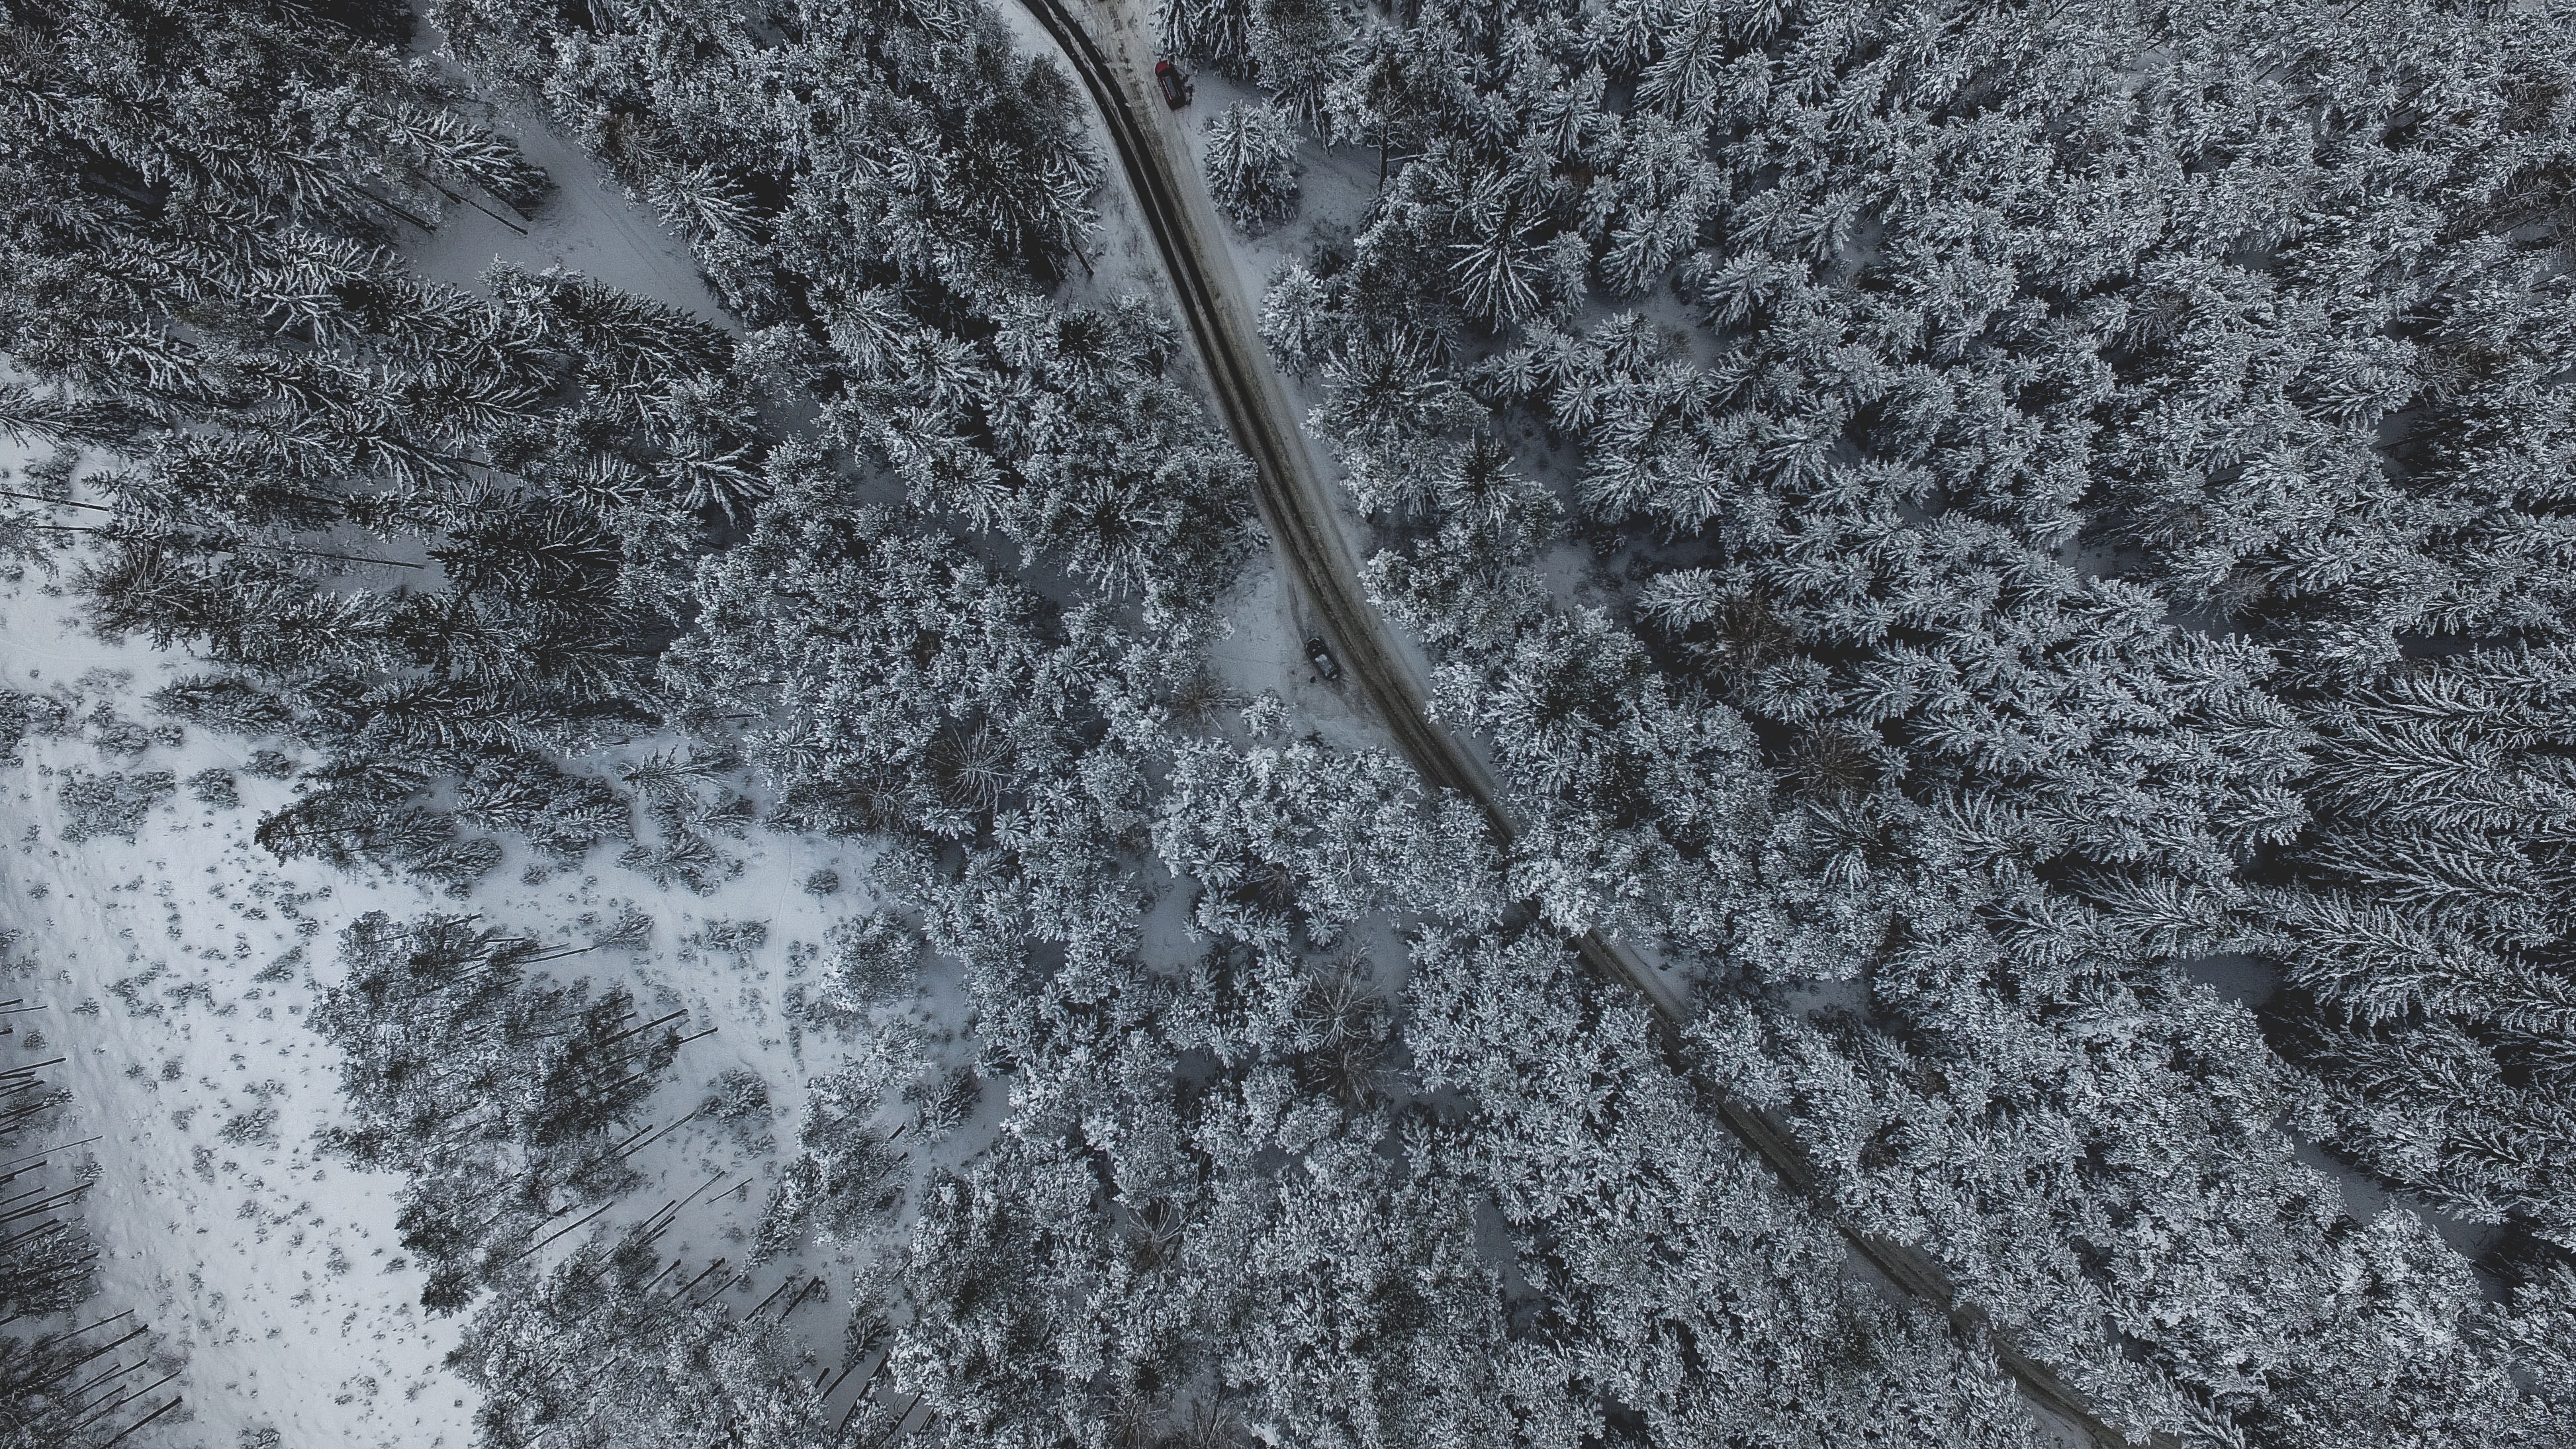 Country road winds through a snowy forest landscape